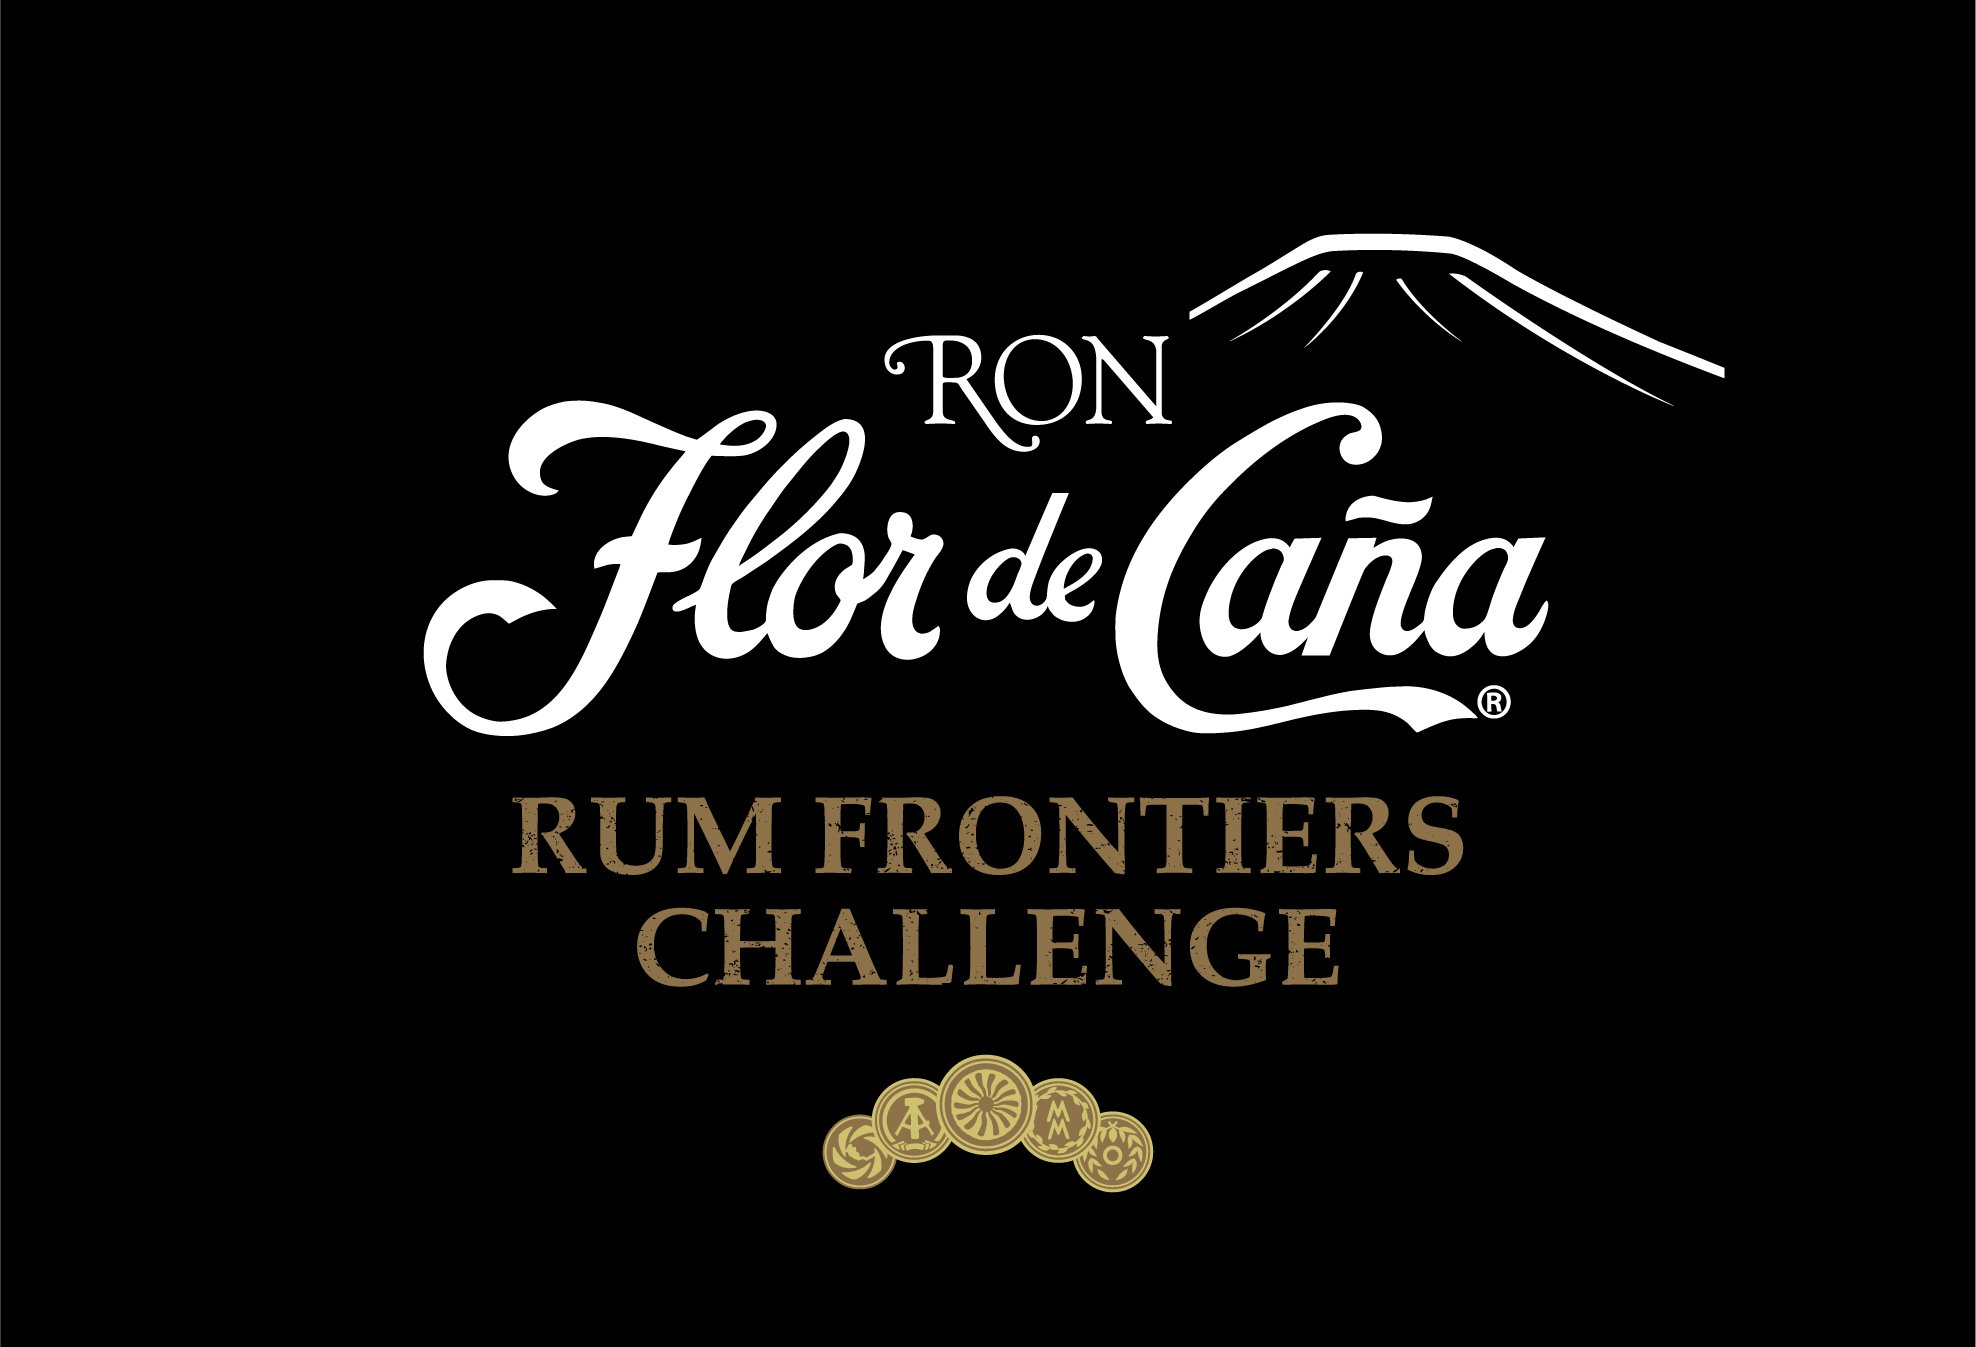 Photo of Concurso Rum Frontiers Flor de Caña Iberia